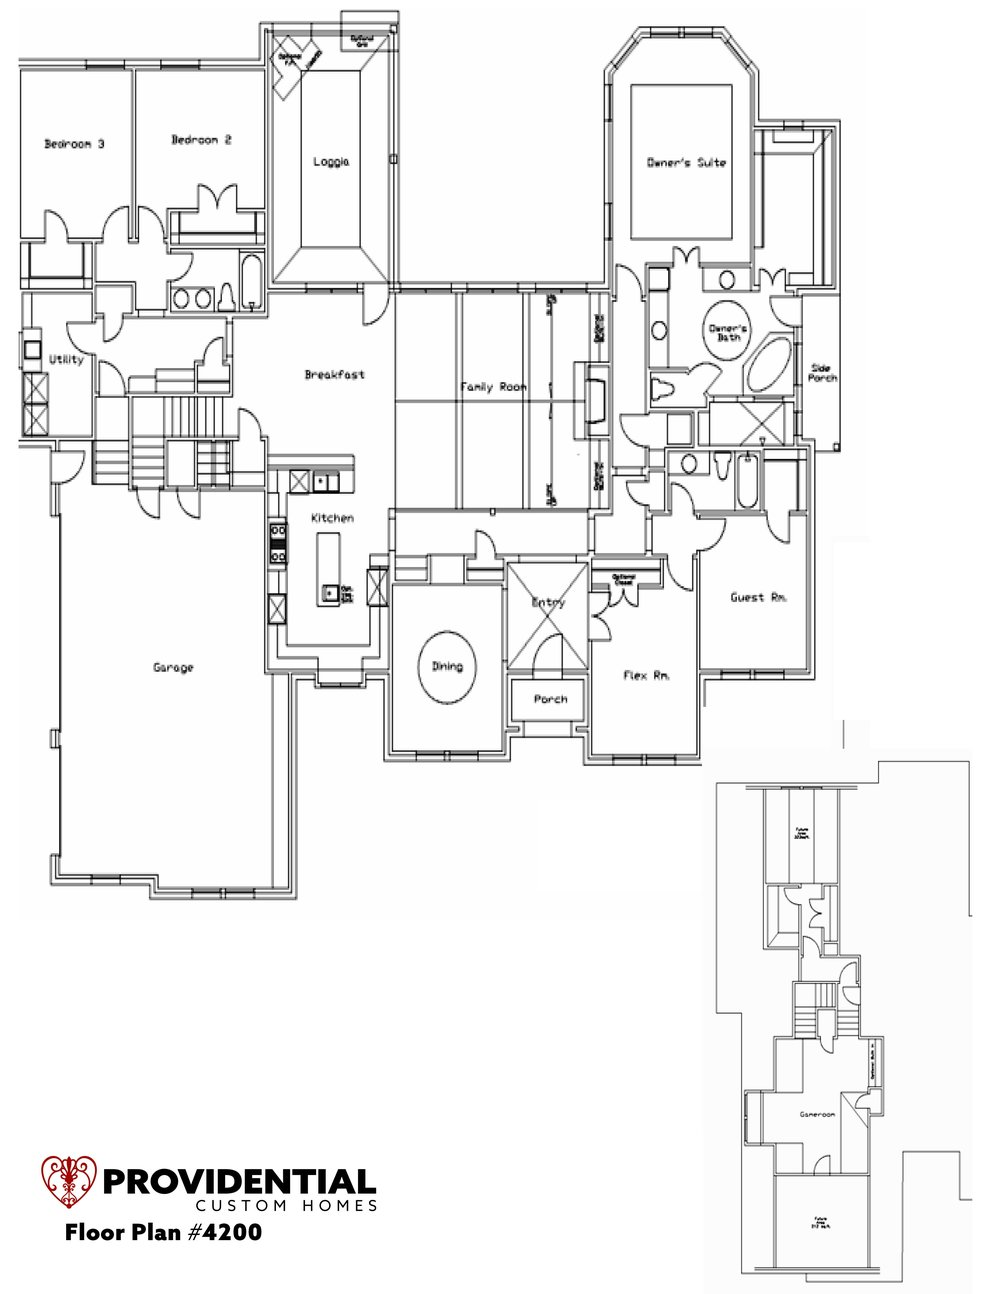 The FLOOR PLAN 4200.jpg